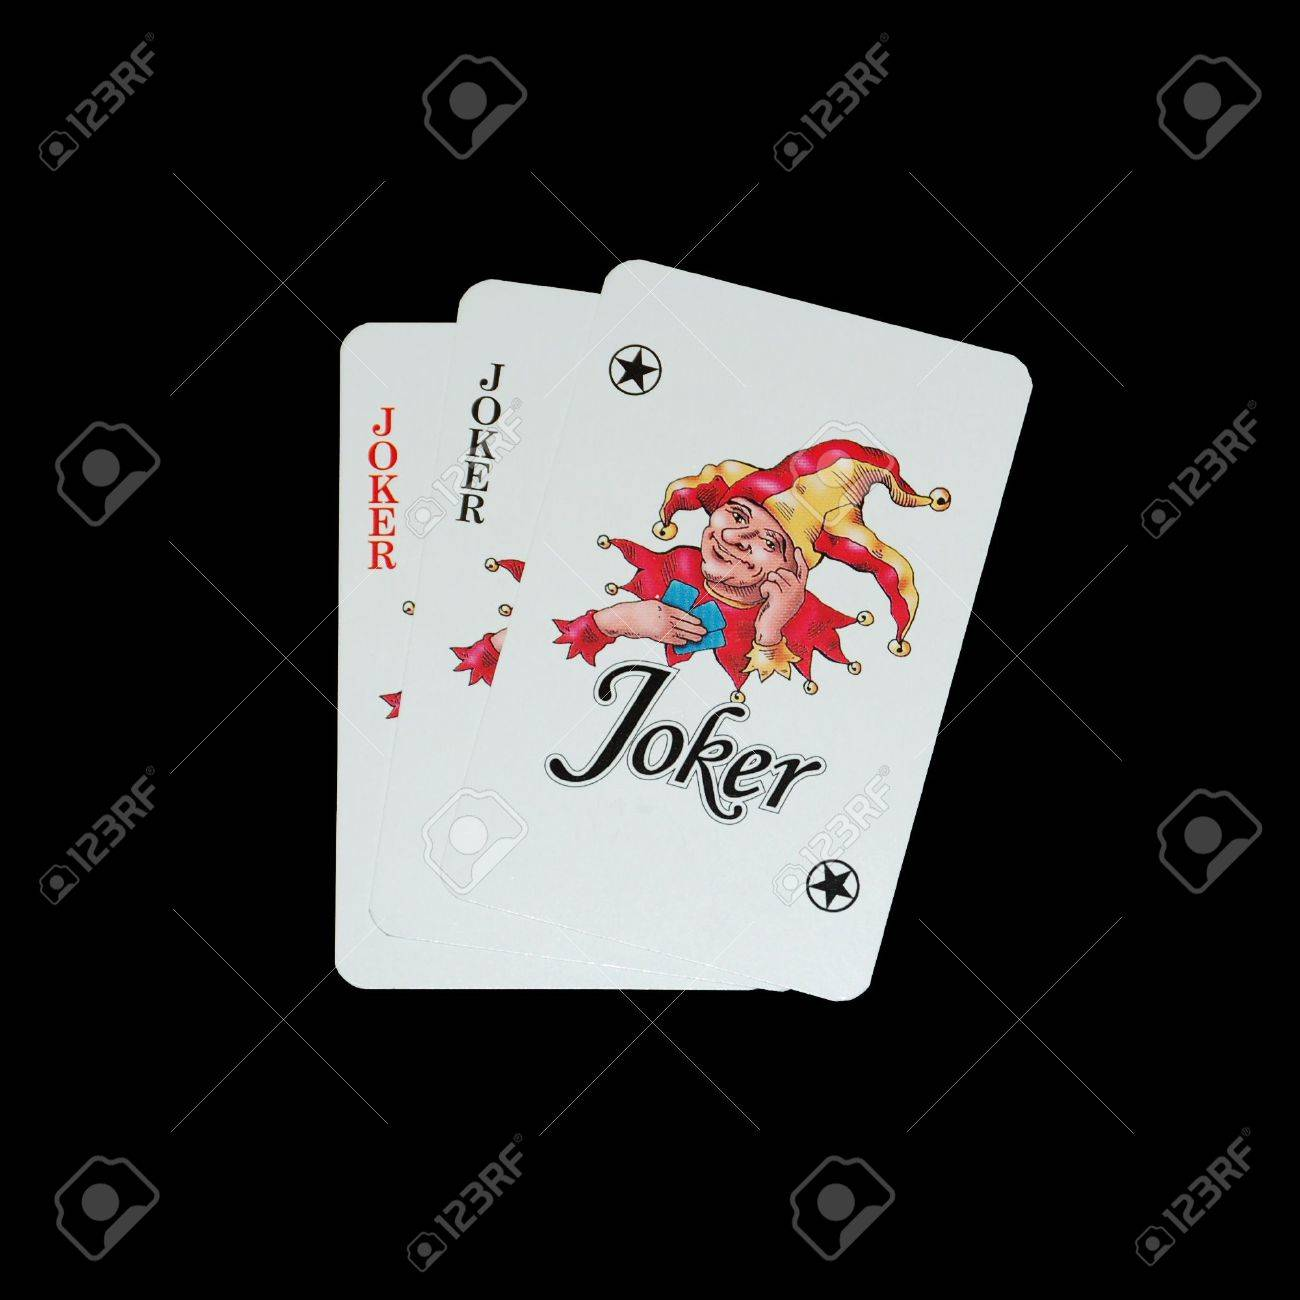 Playing Cards Isolated On Black Background Joker Stock Photo Picture And Royalty Free Image Image 768569